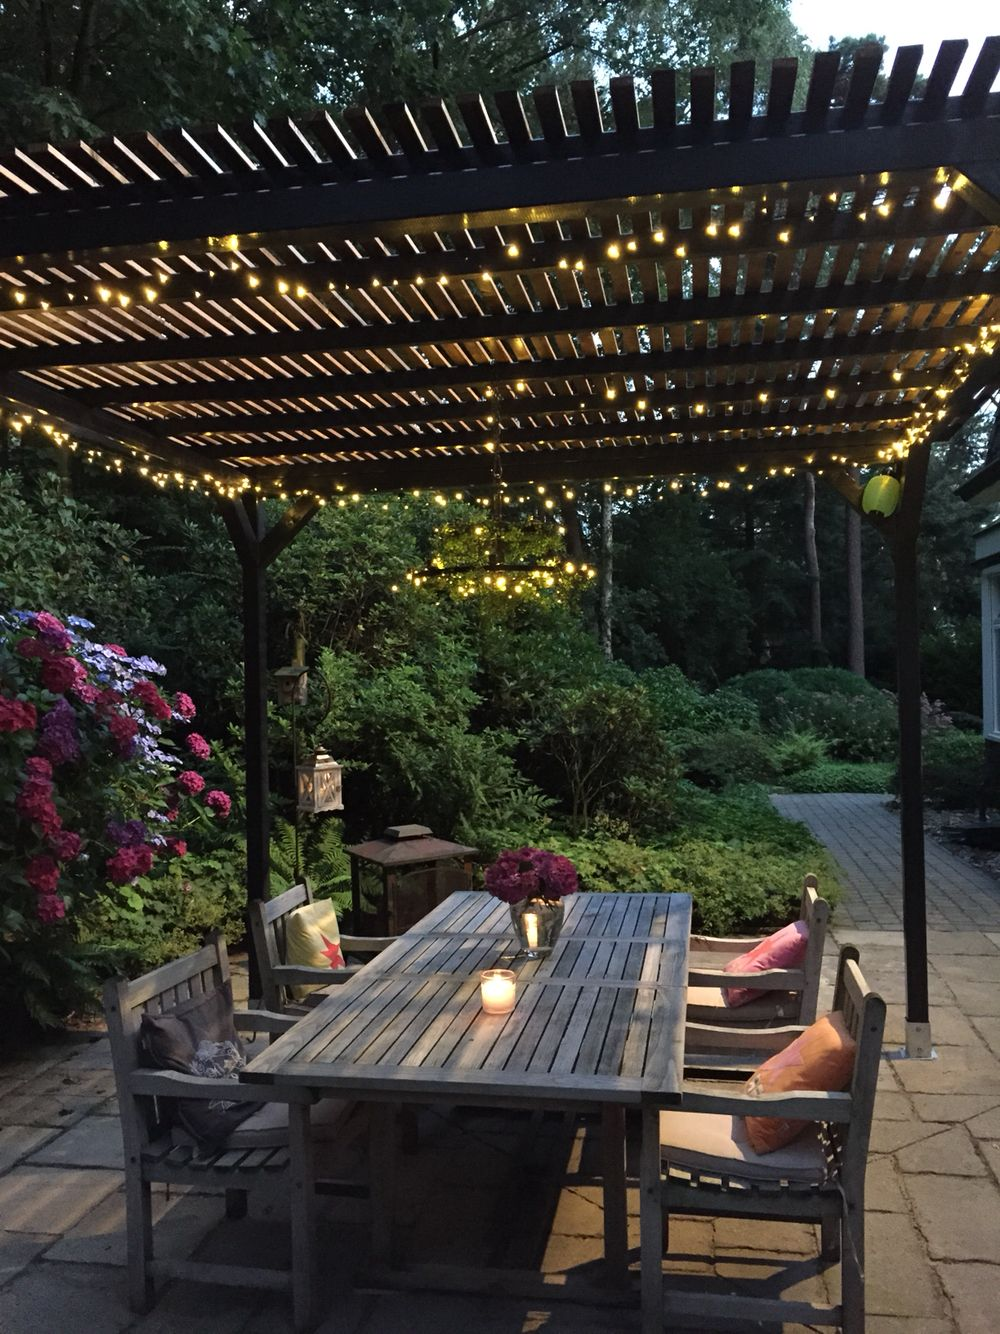 Dream pergola with fairy lights chandelier. Self made